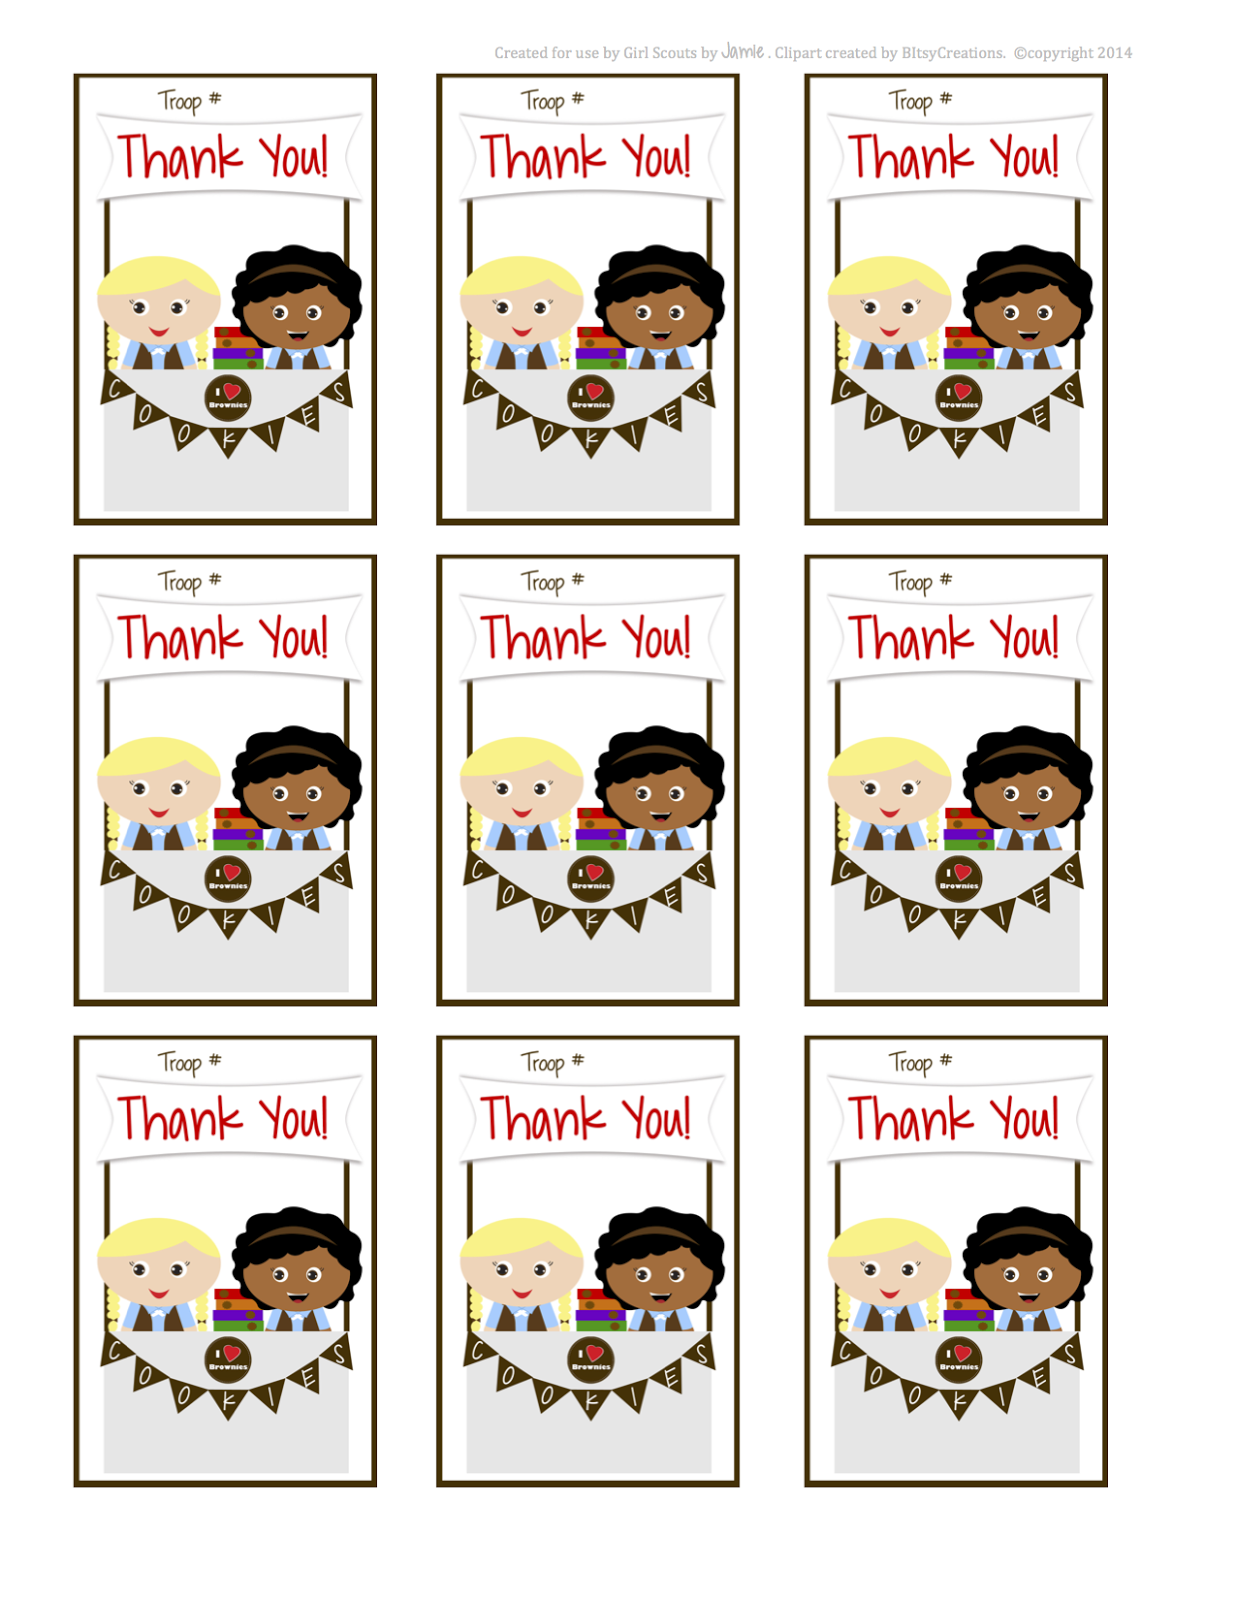 Fashionable Moms: Girls Scouts - Brownies Thank You Cards ...